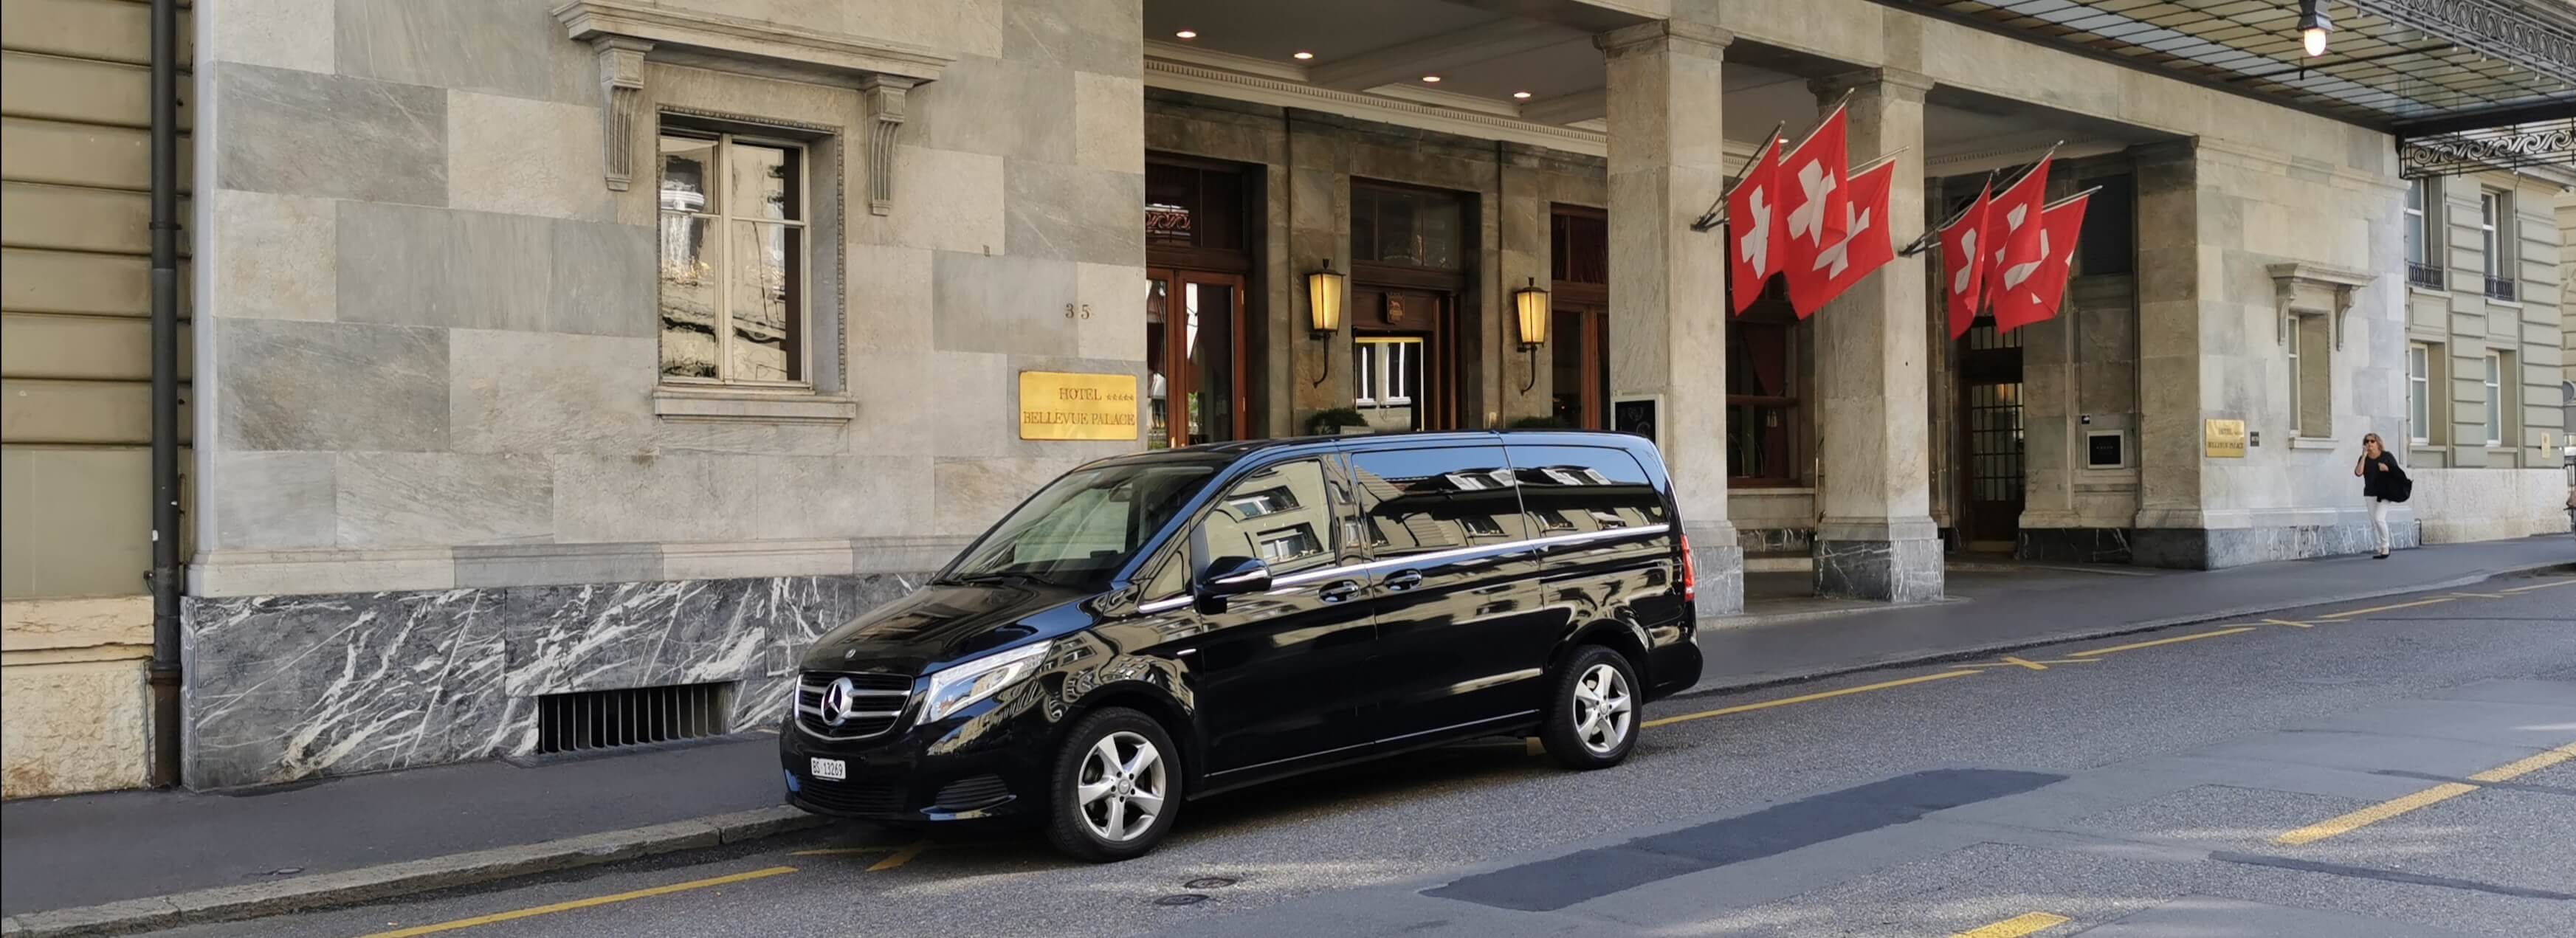 Transfer from Grindelwald to zurich l taxi Grindelwald to zurich airport